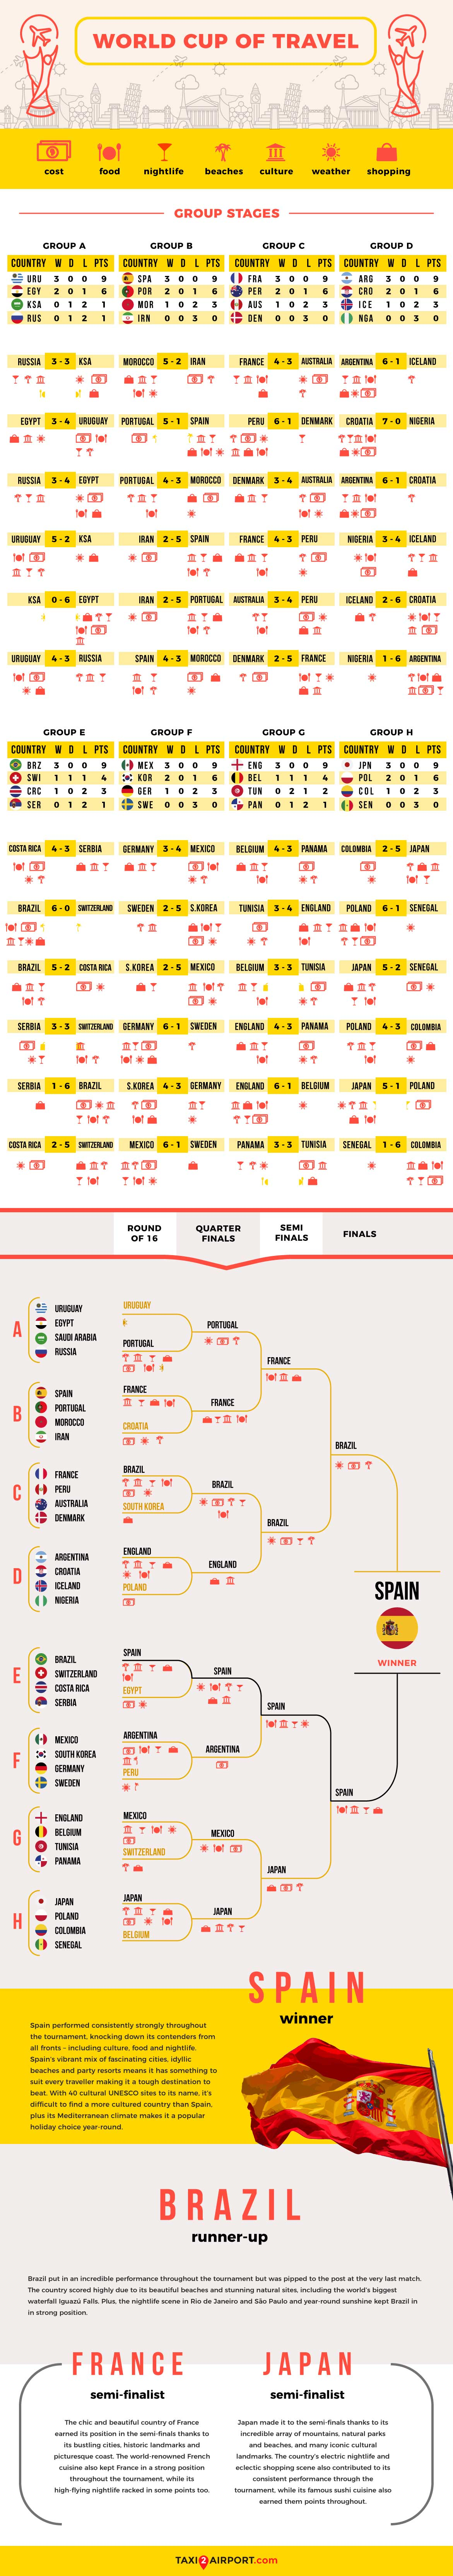 World Cup of Travel